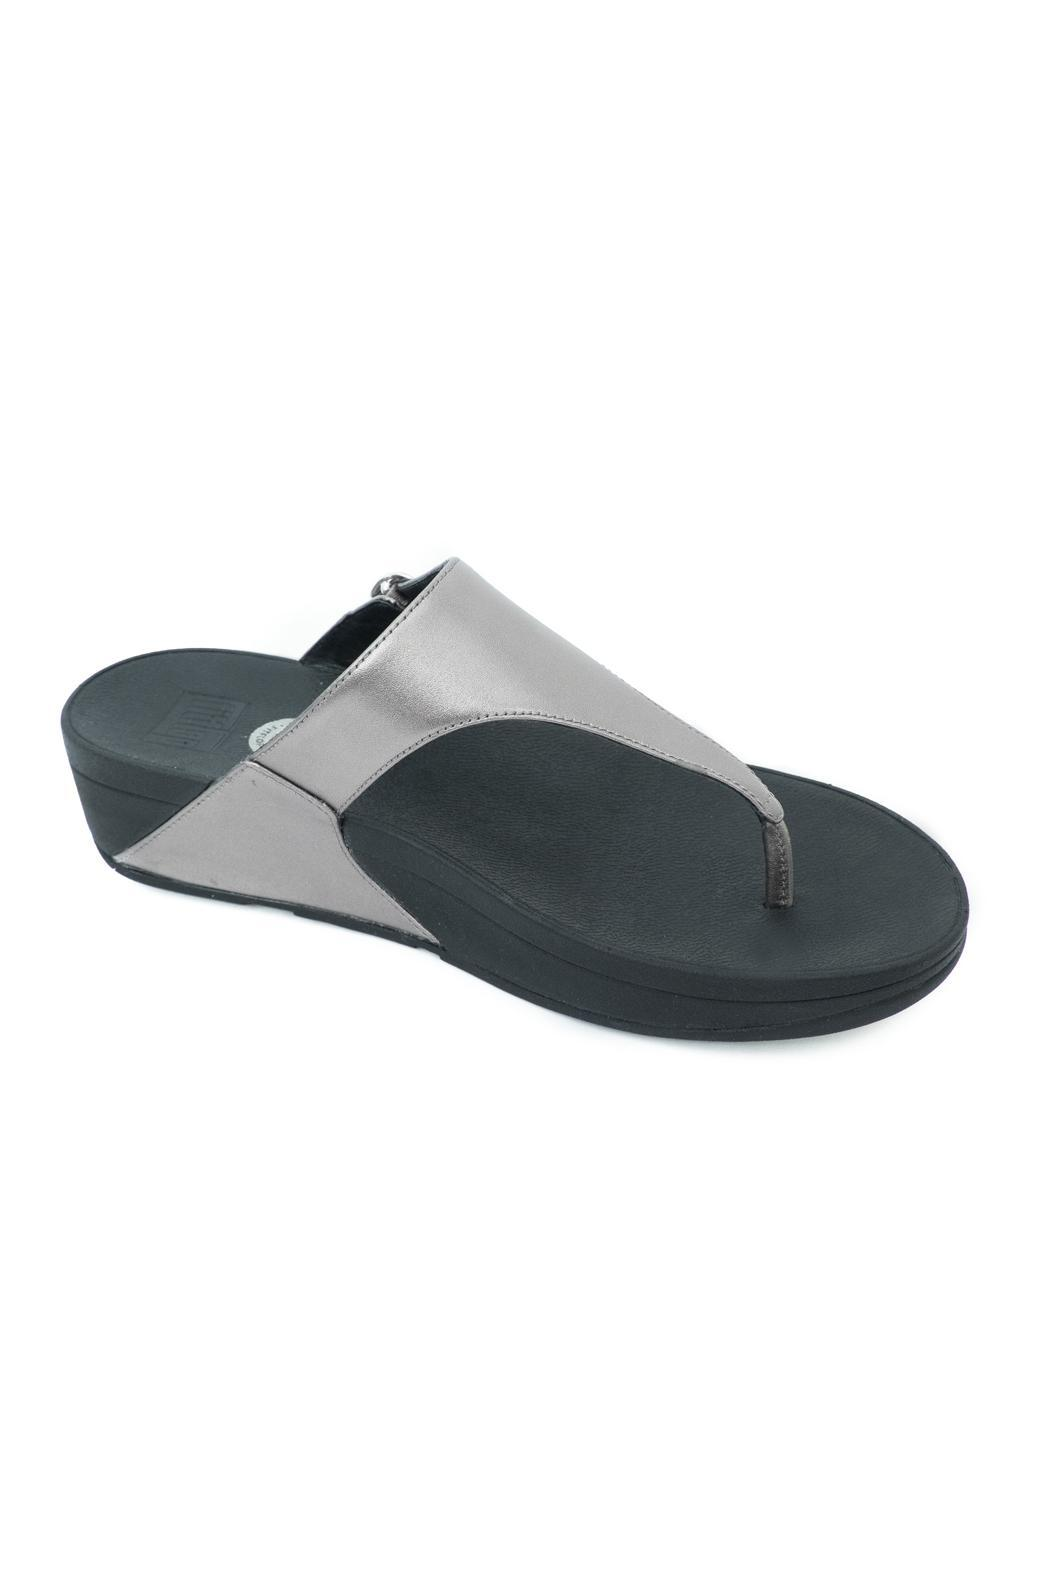 ca76883a5 Fitflop The Skinny Pewter from Canada by Starlet — Shoptiques